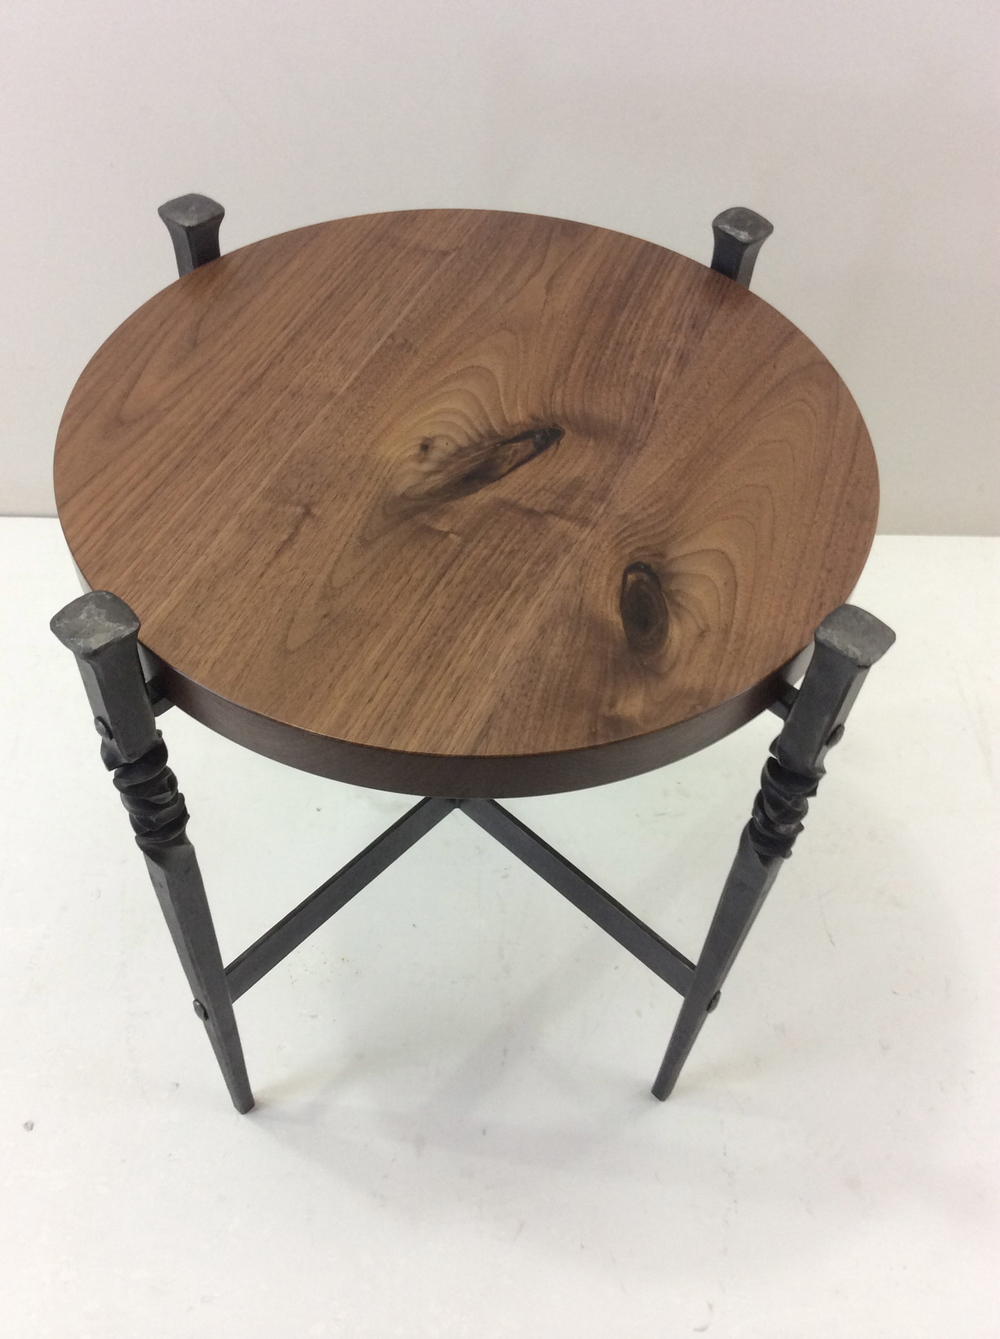 Hand forged Steel table with twist and circular wood top